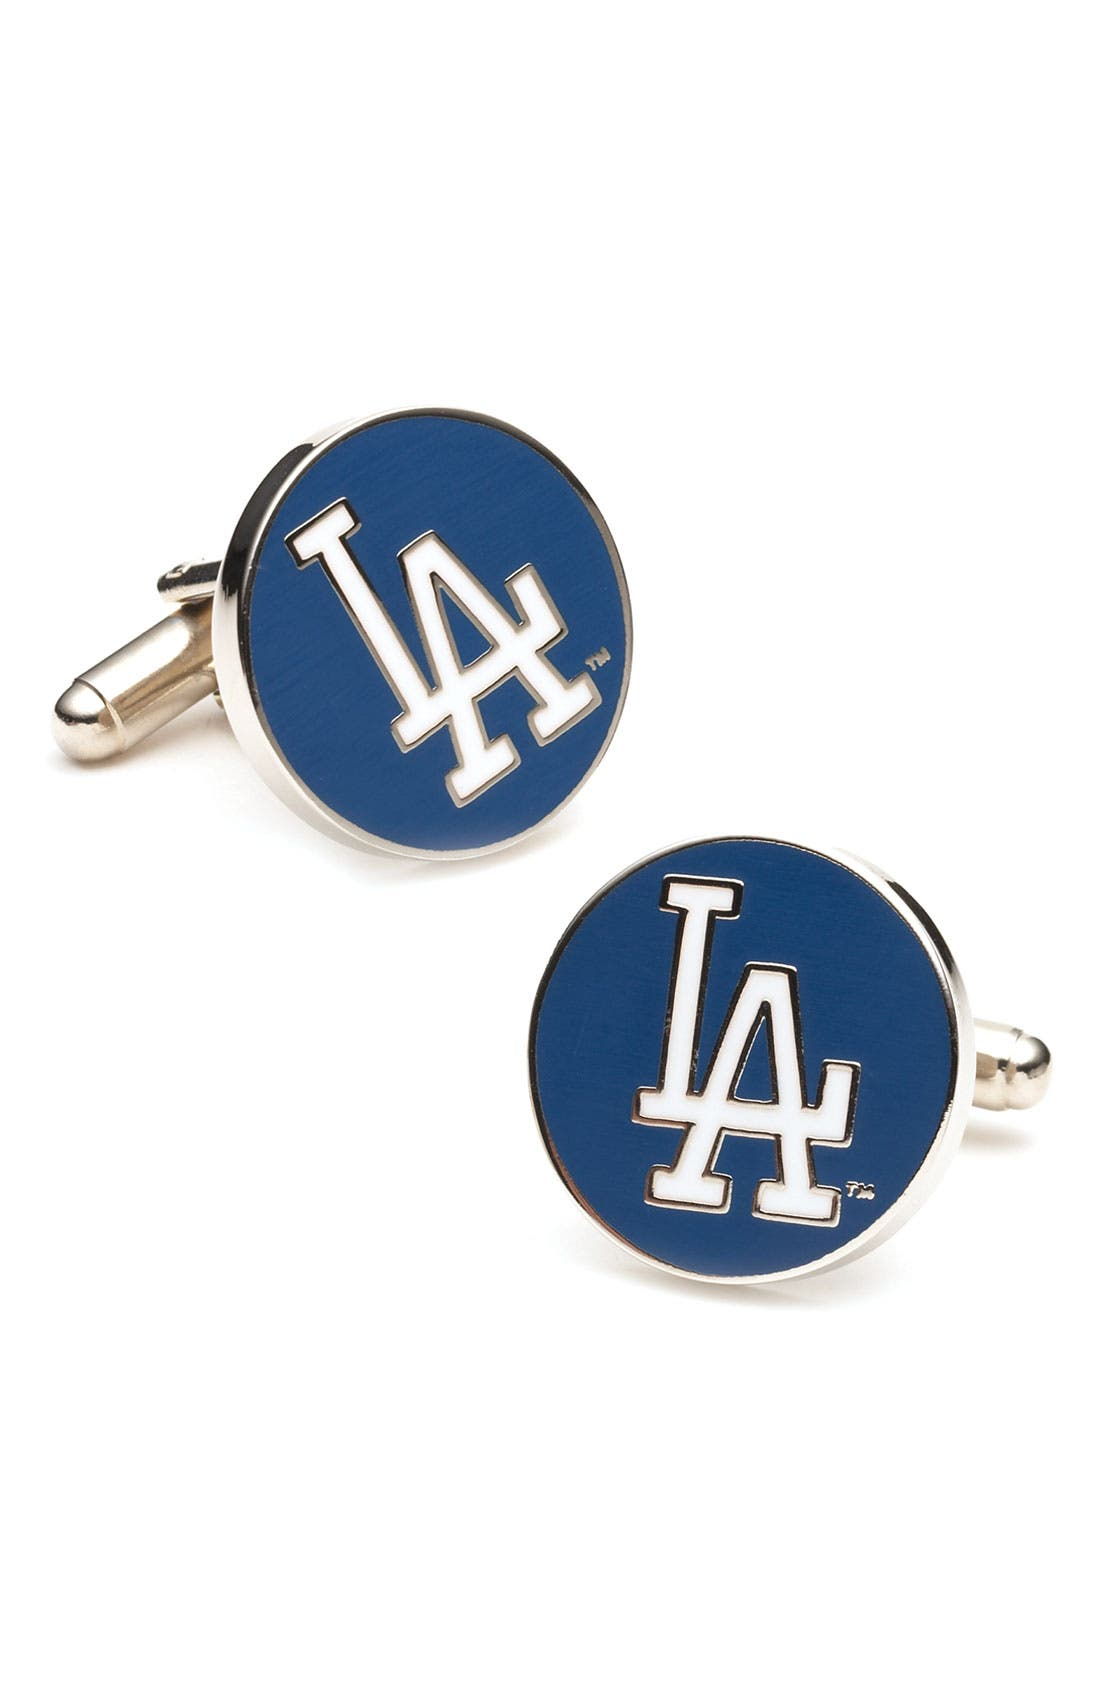 'Los Angeles Dodgers' Cuff Links,                         Main,                         color, 400